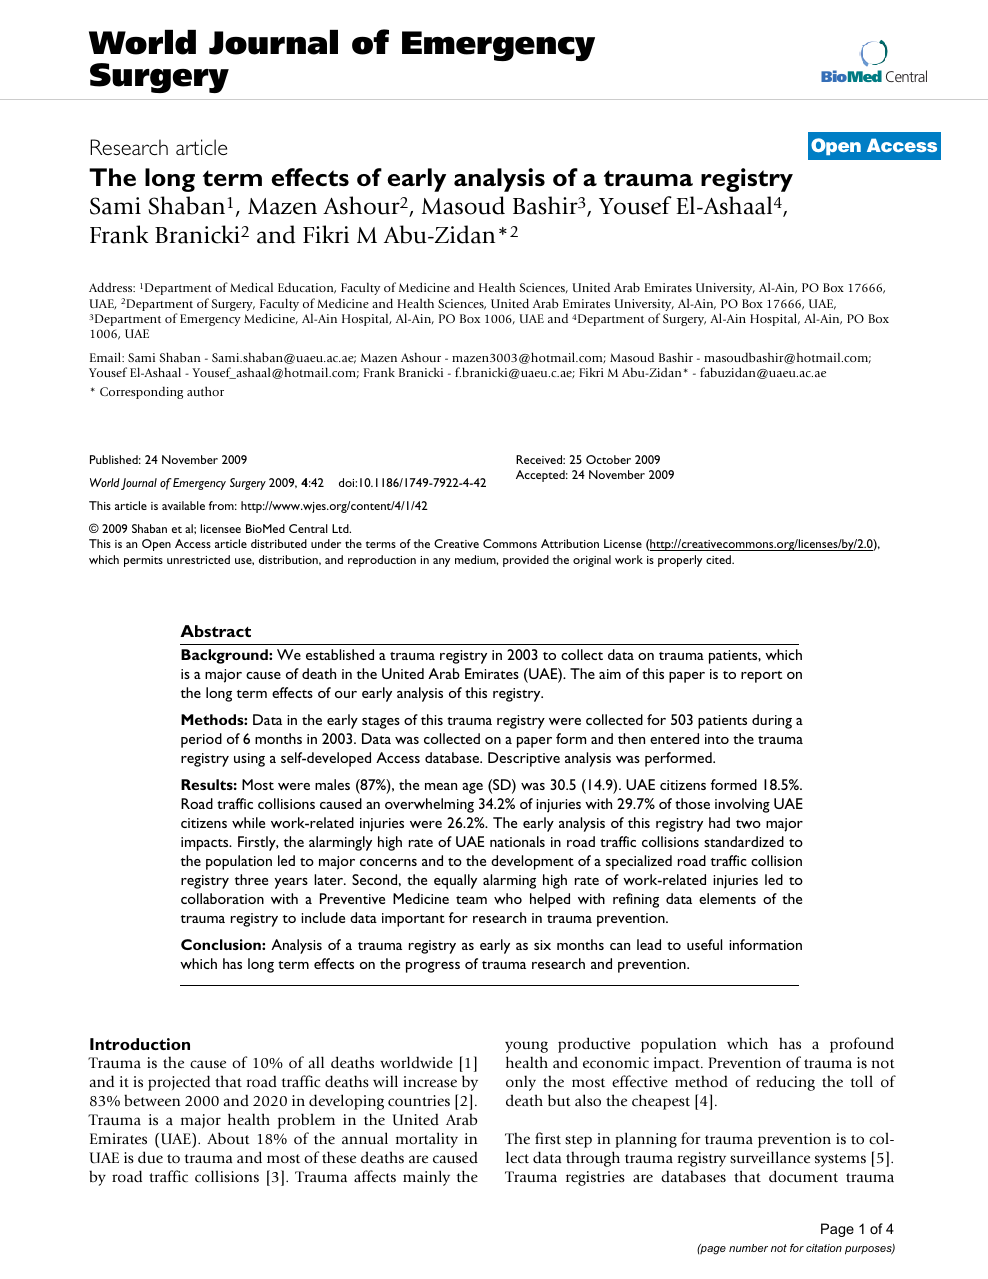 The long term effects of early analysis of a trauma registry